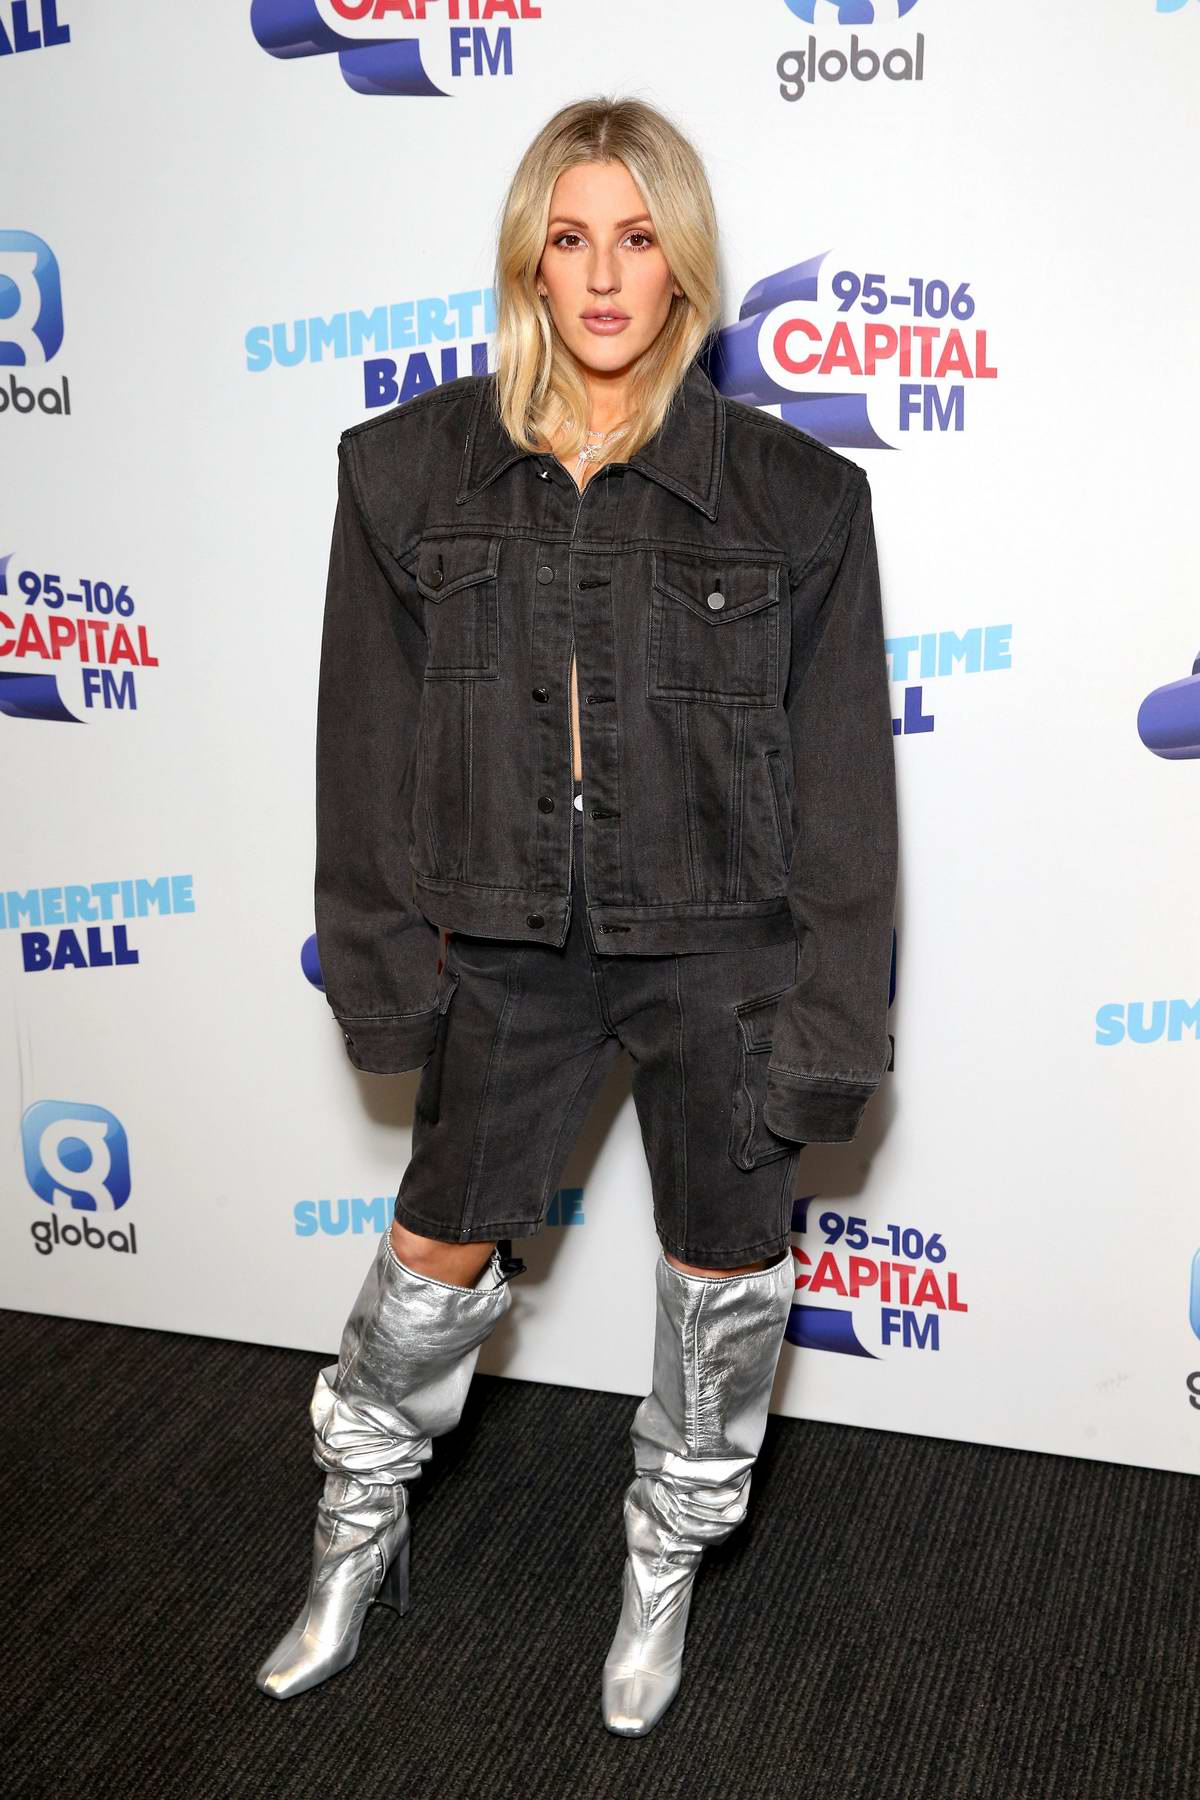 Ellie Goulding attends a photocall during 2019 Capital FM Summertime Ball at Wembley Stadium in London, UK